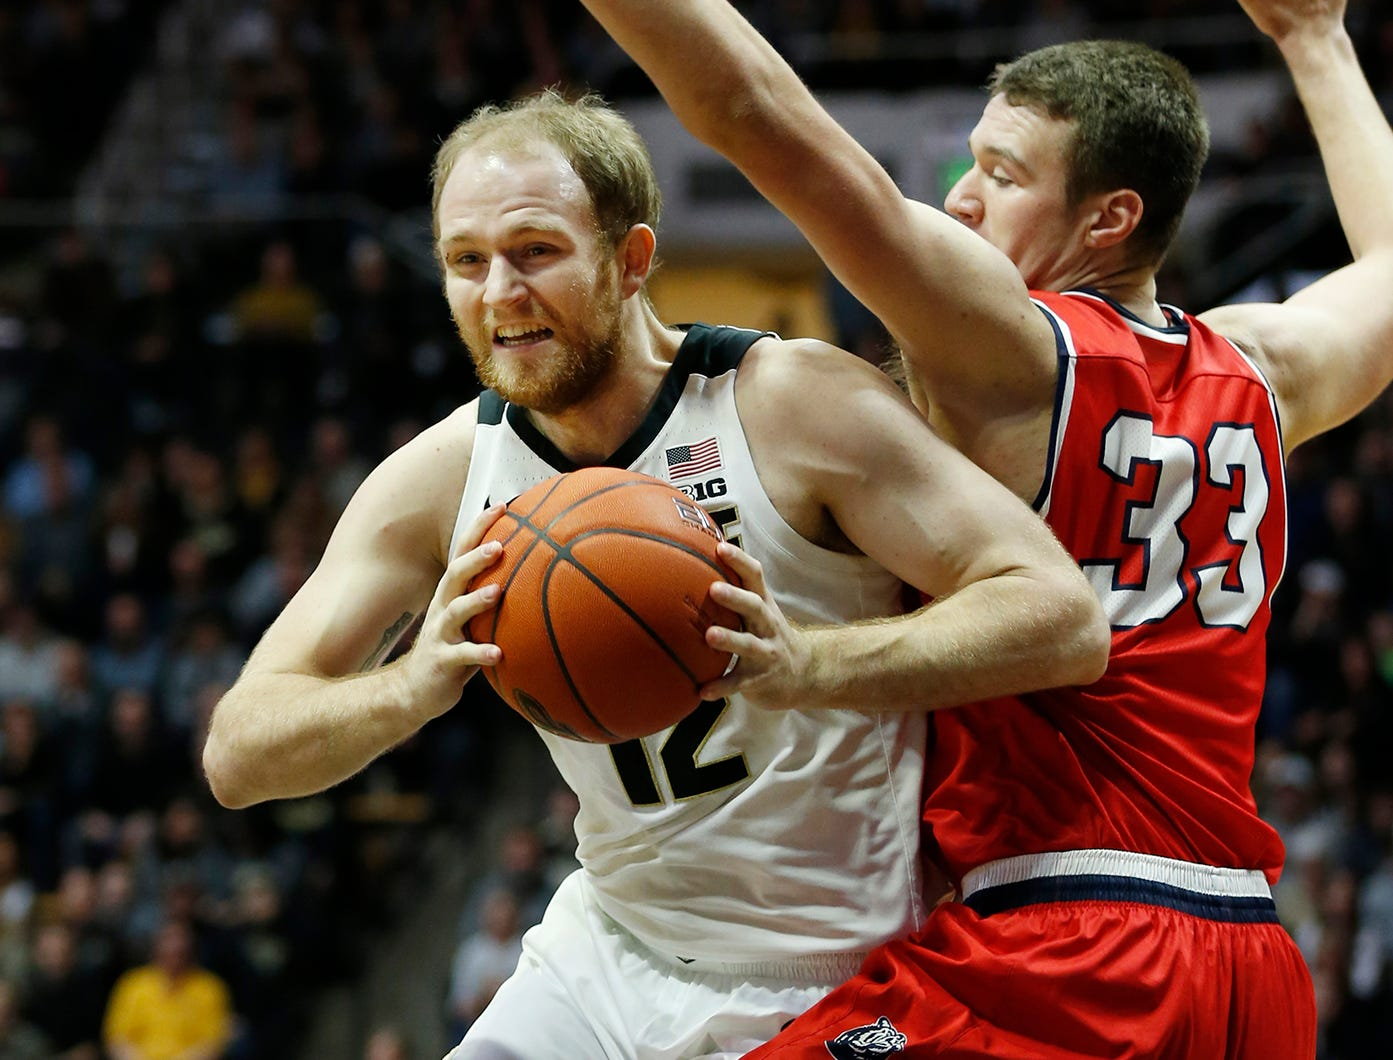 Evan Boudreaux of Purdue works for a shot against Nick Muszynski of Belmont Saturday, December 29, 2018, at Mackey Arena. Purdue defeated Belmont 73-62.